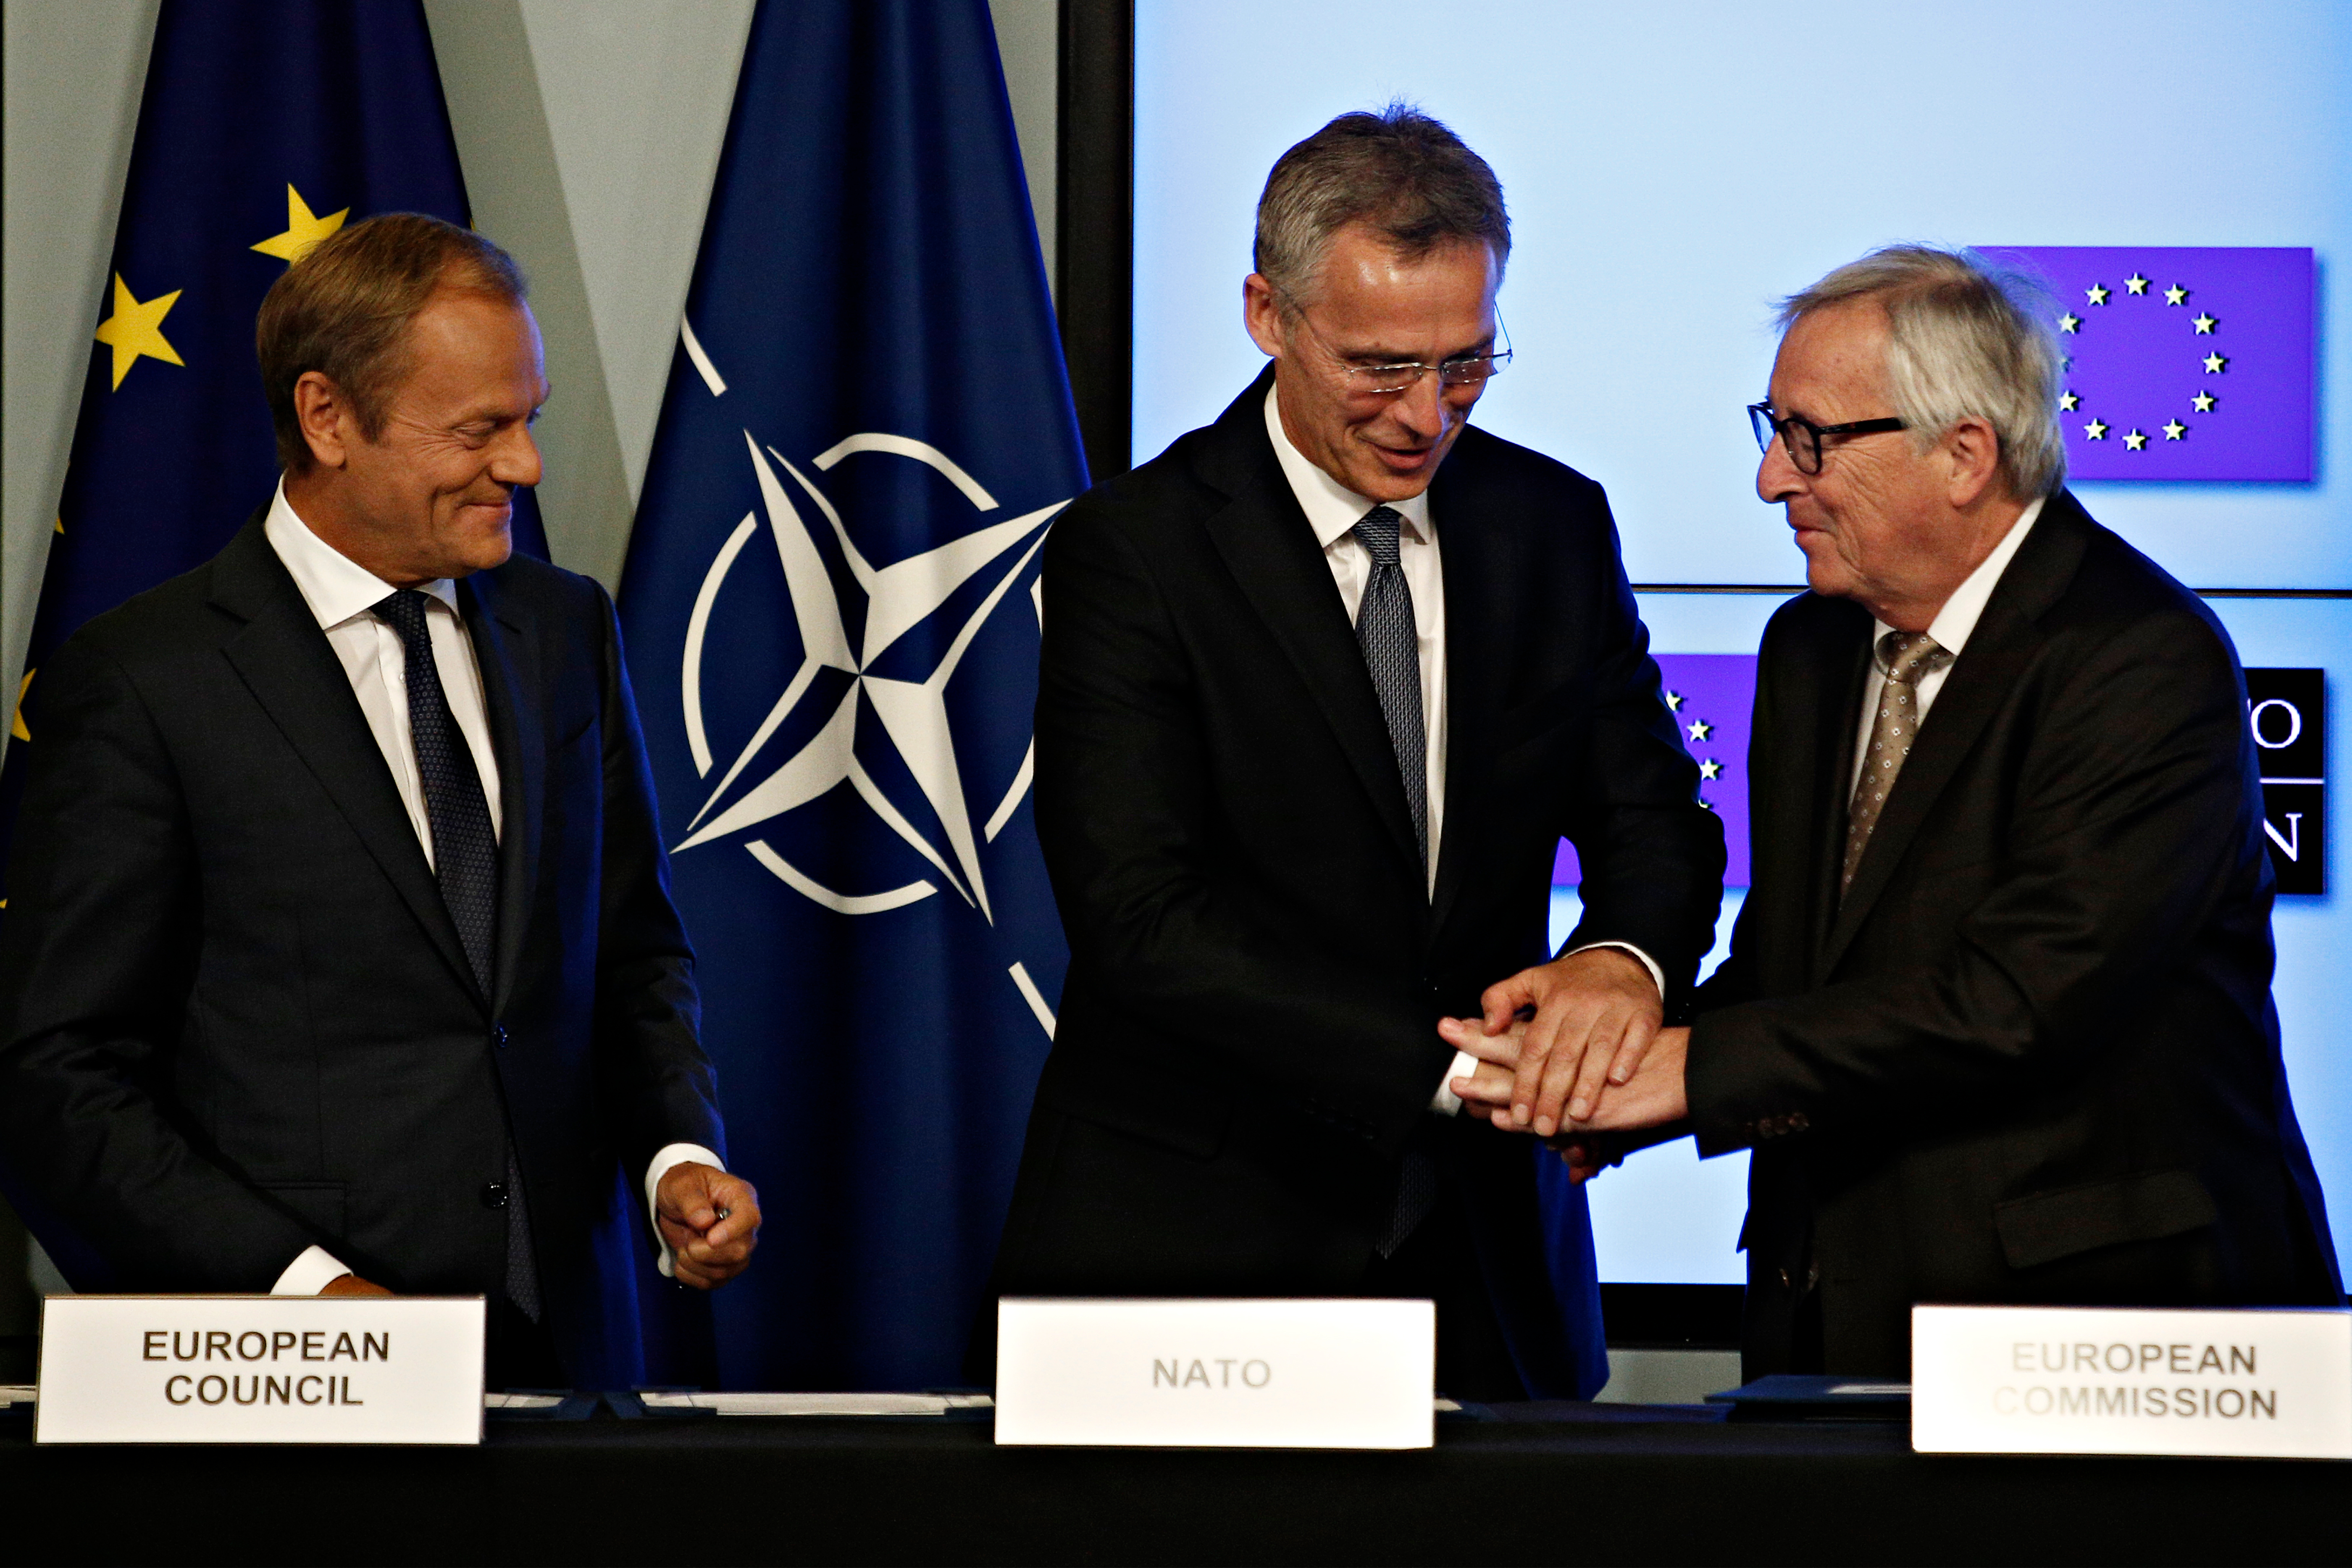 The EU and NATO must take pro-active steps to send Putin a message